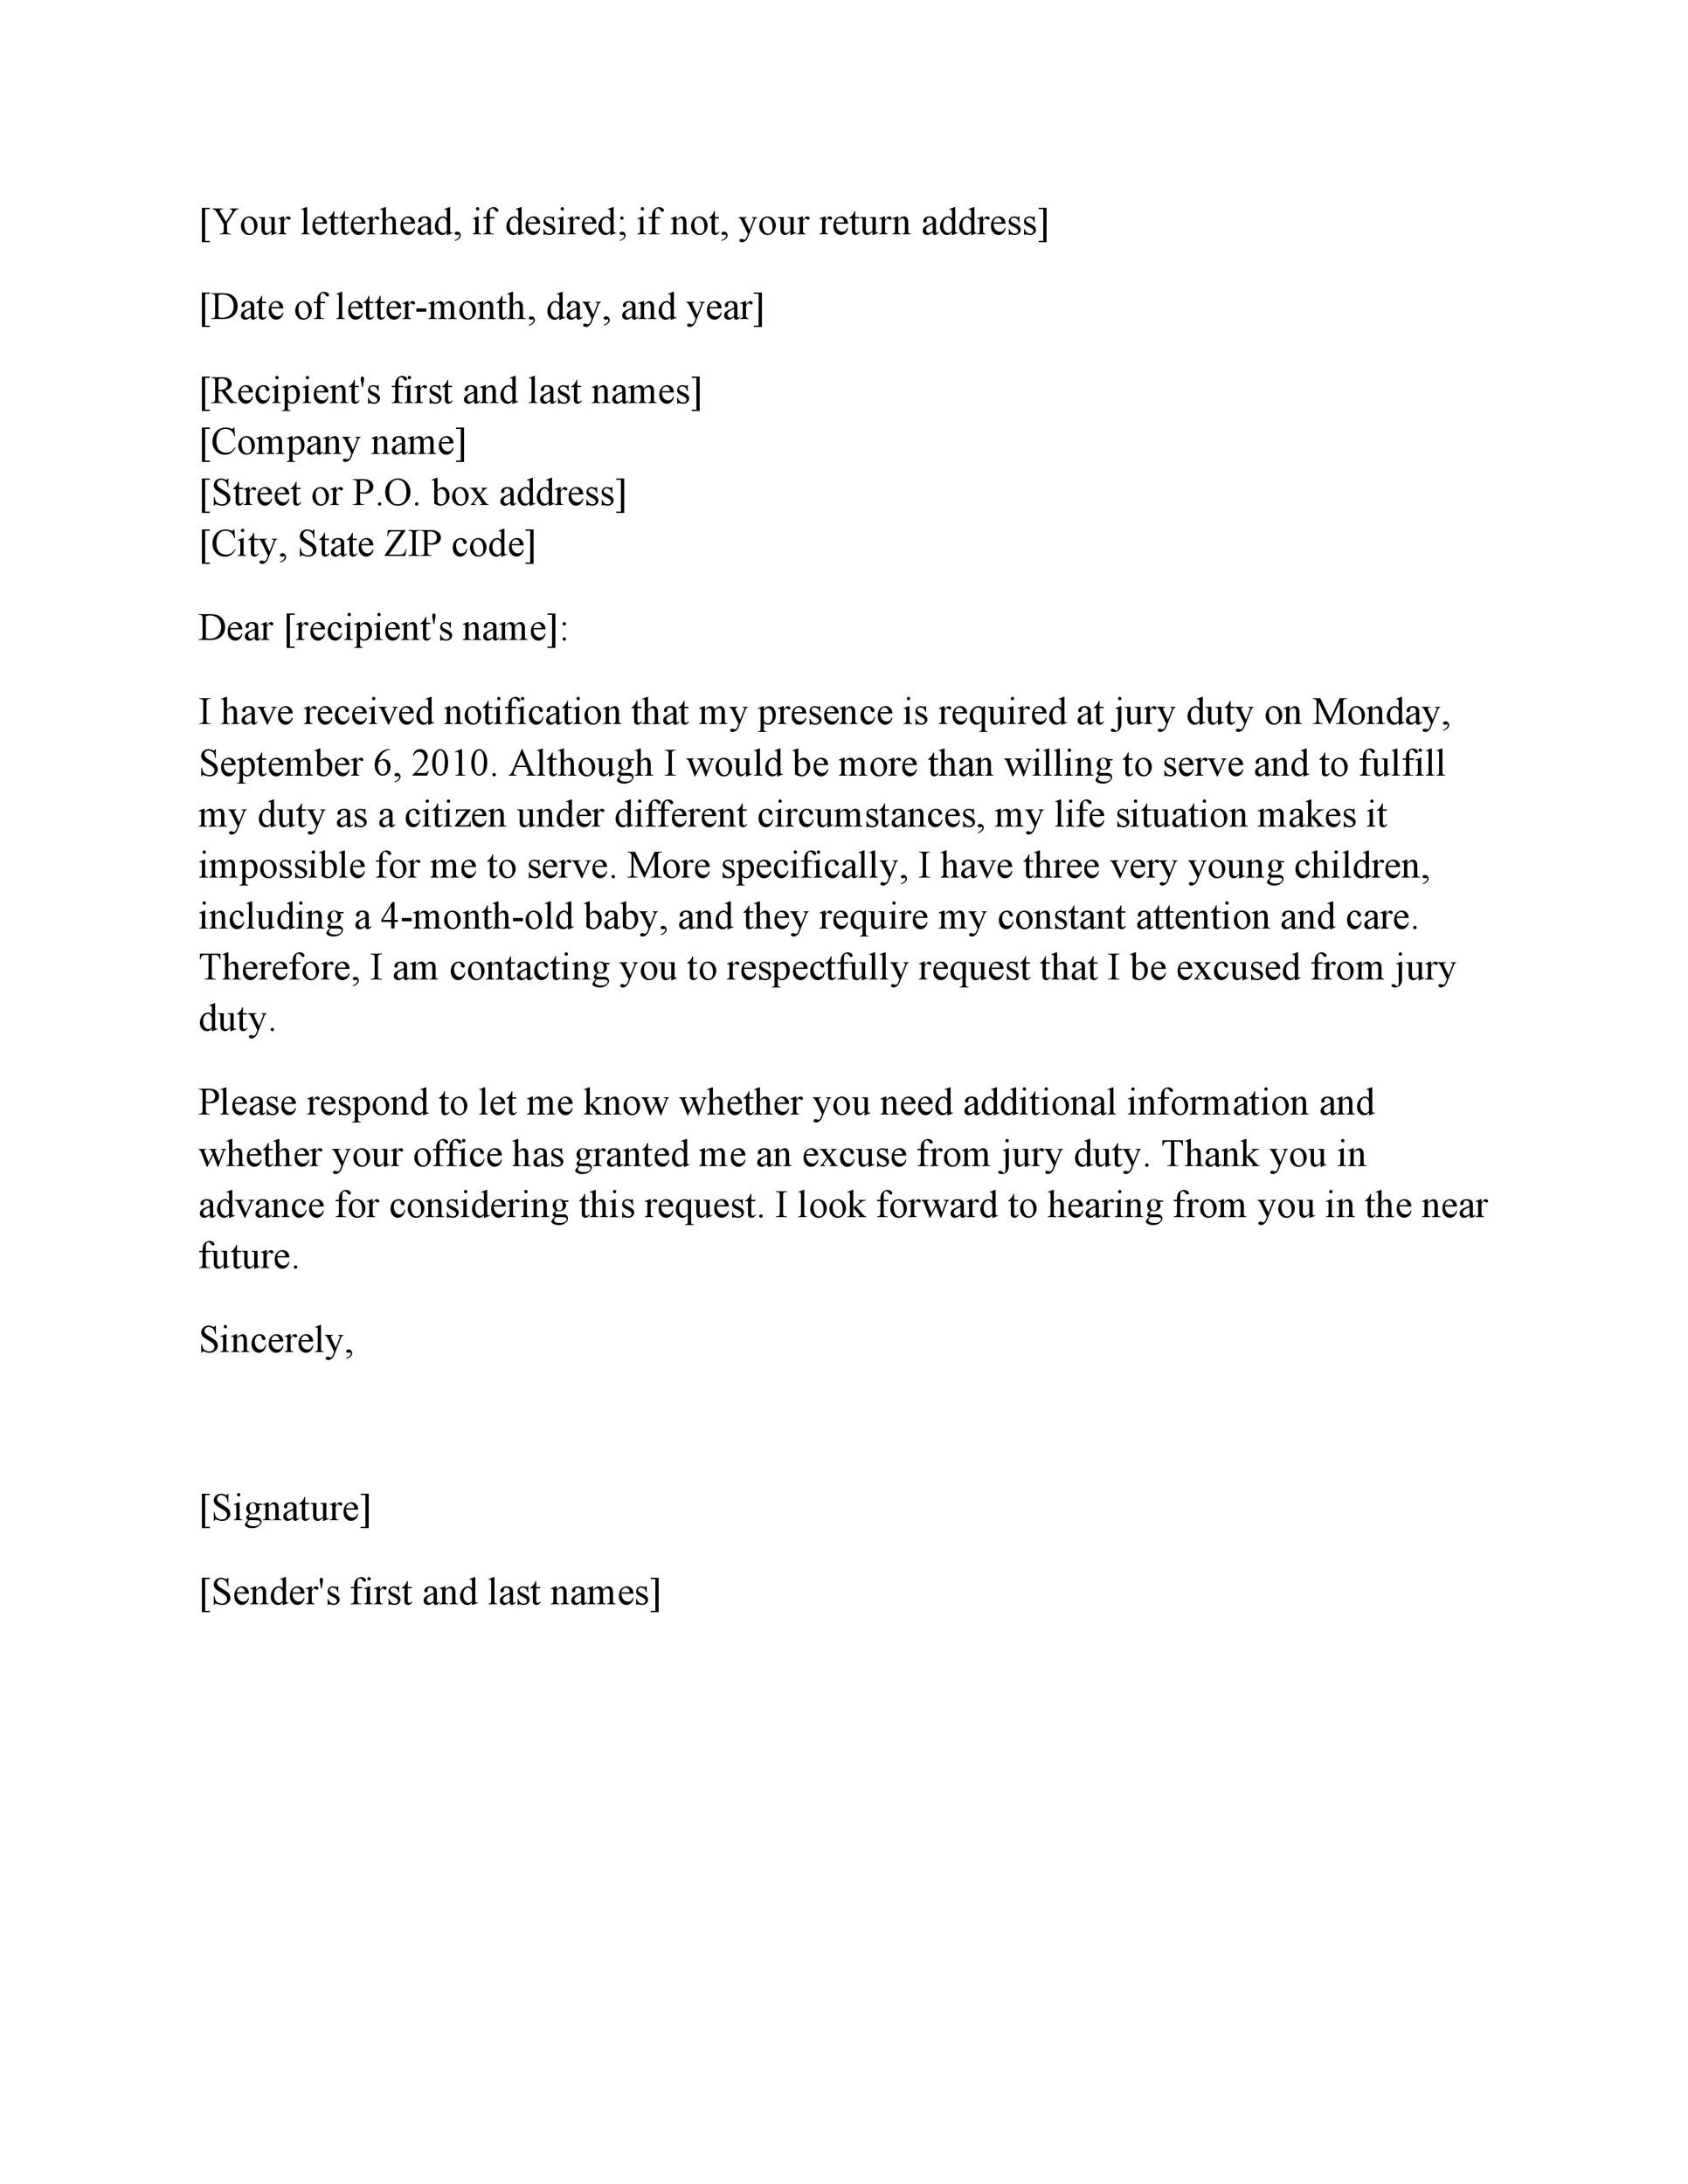 Sample Letter To Judge For Missing Court Date from templatelab.com